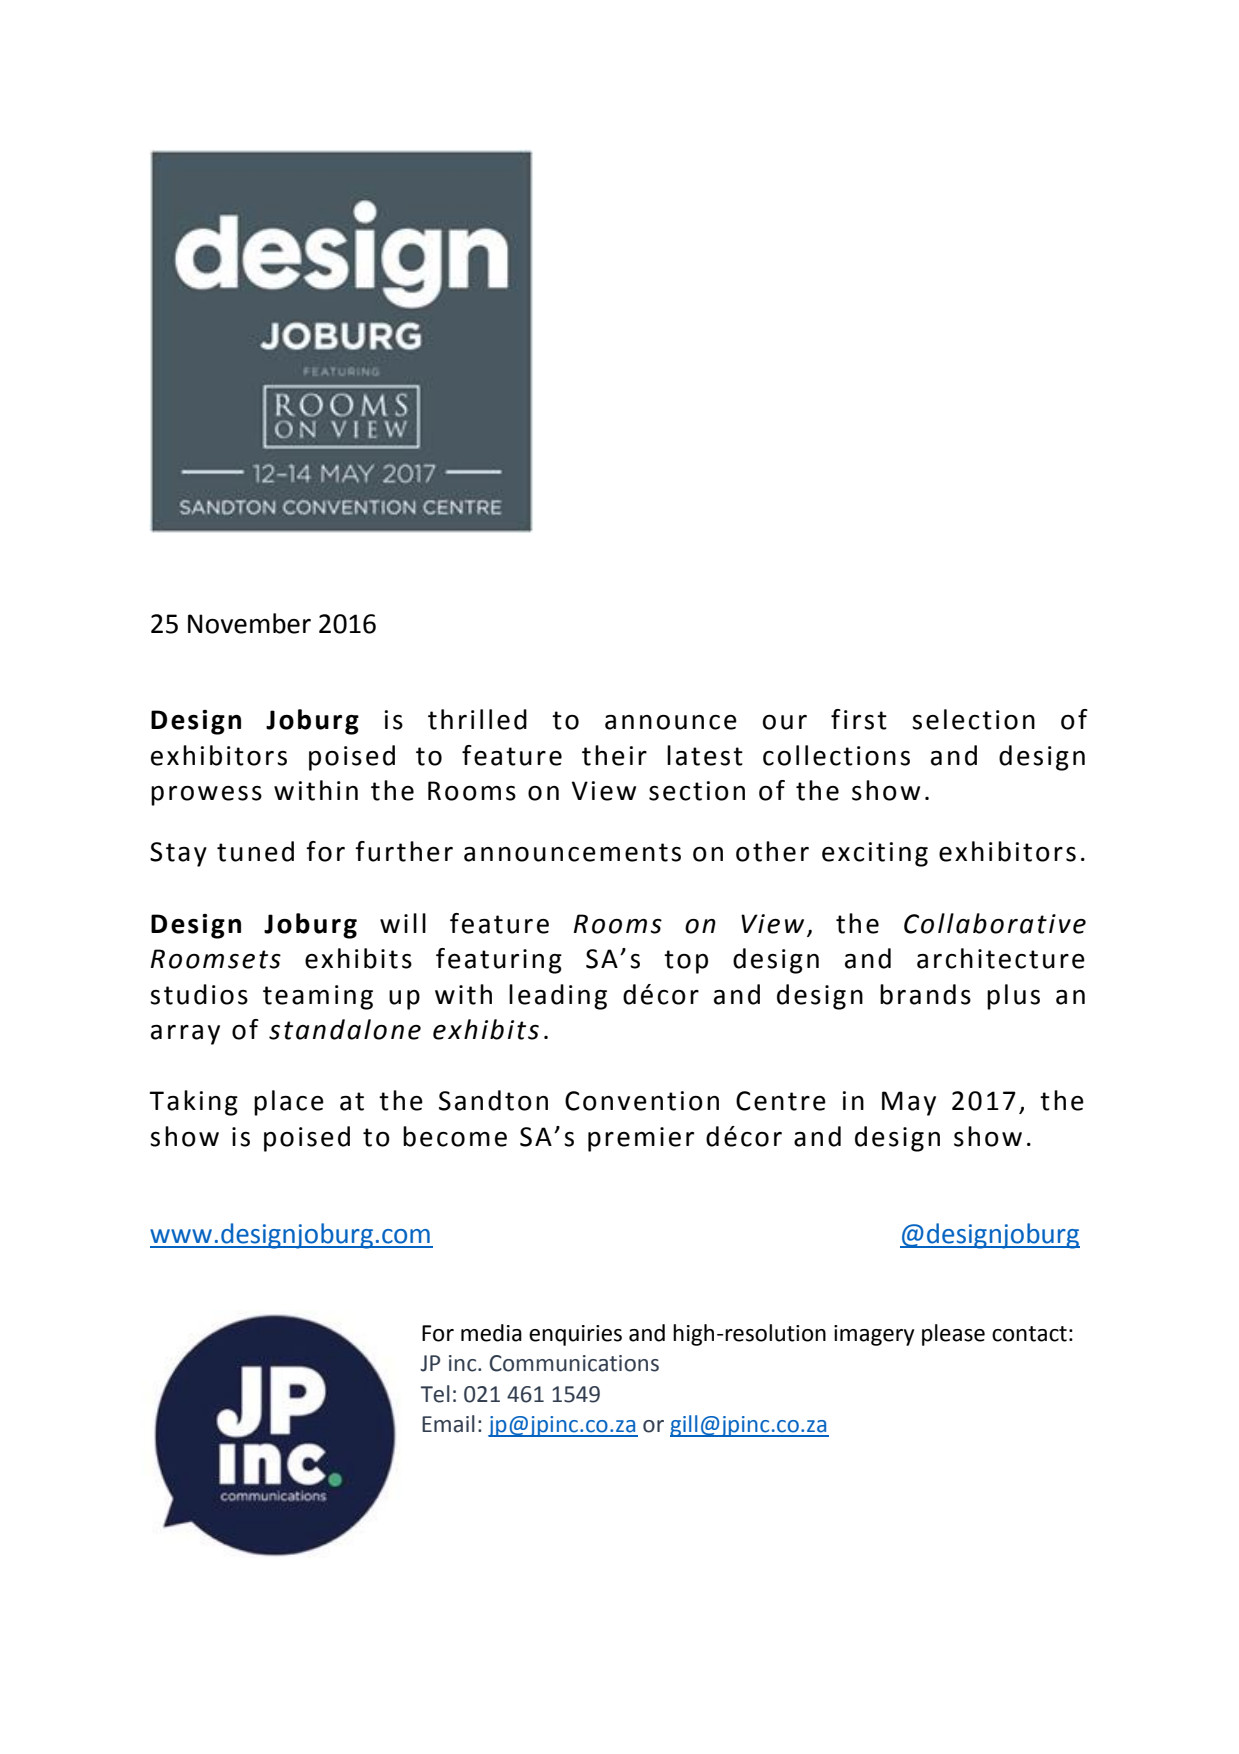 Design Joburg Featuring Rooms on View - Update 25 November 2016